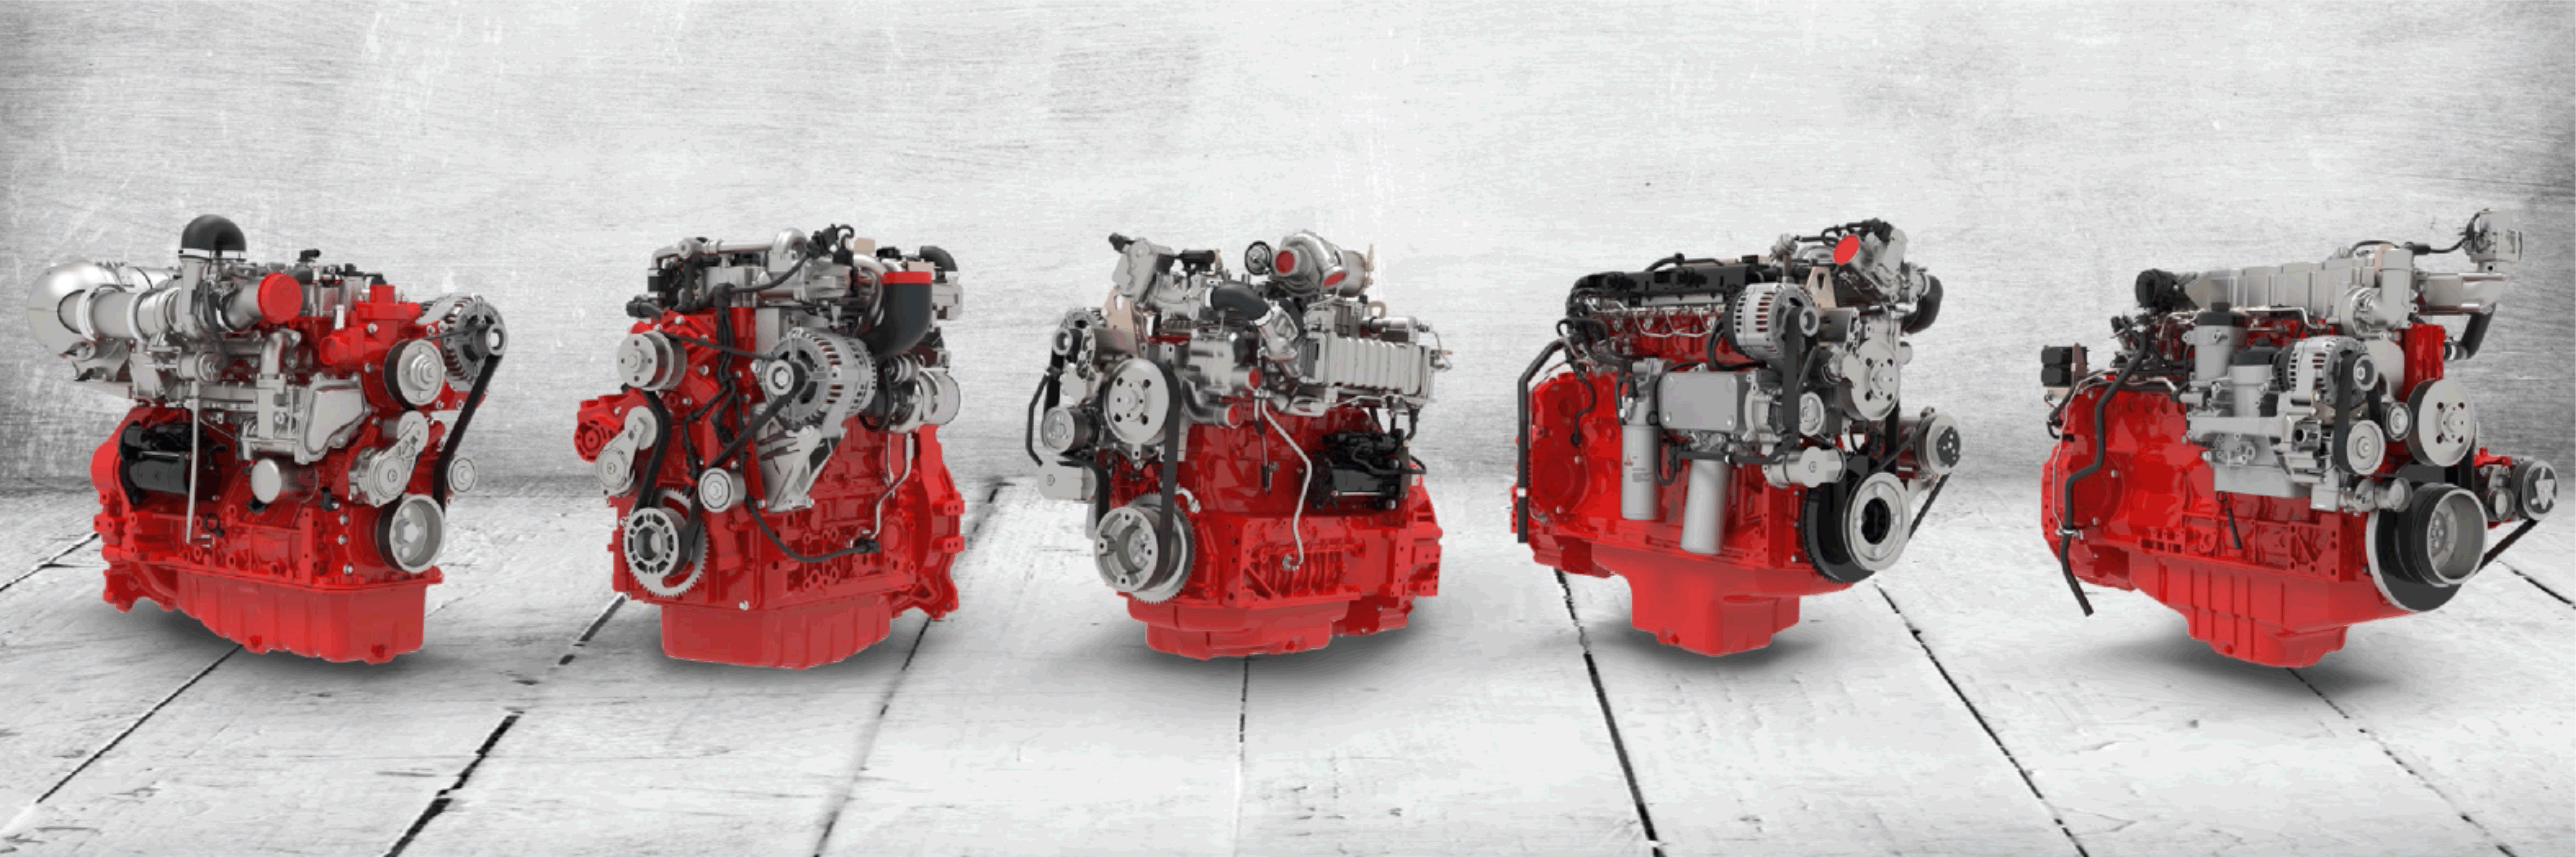 IMLmotoare - DEUTZ engines Tier4 range small